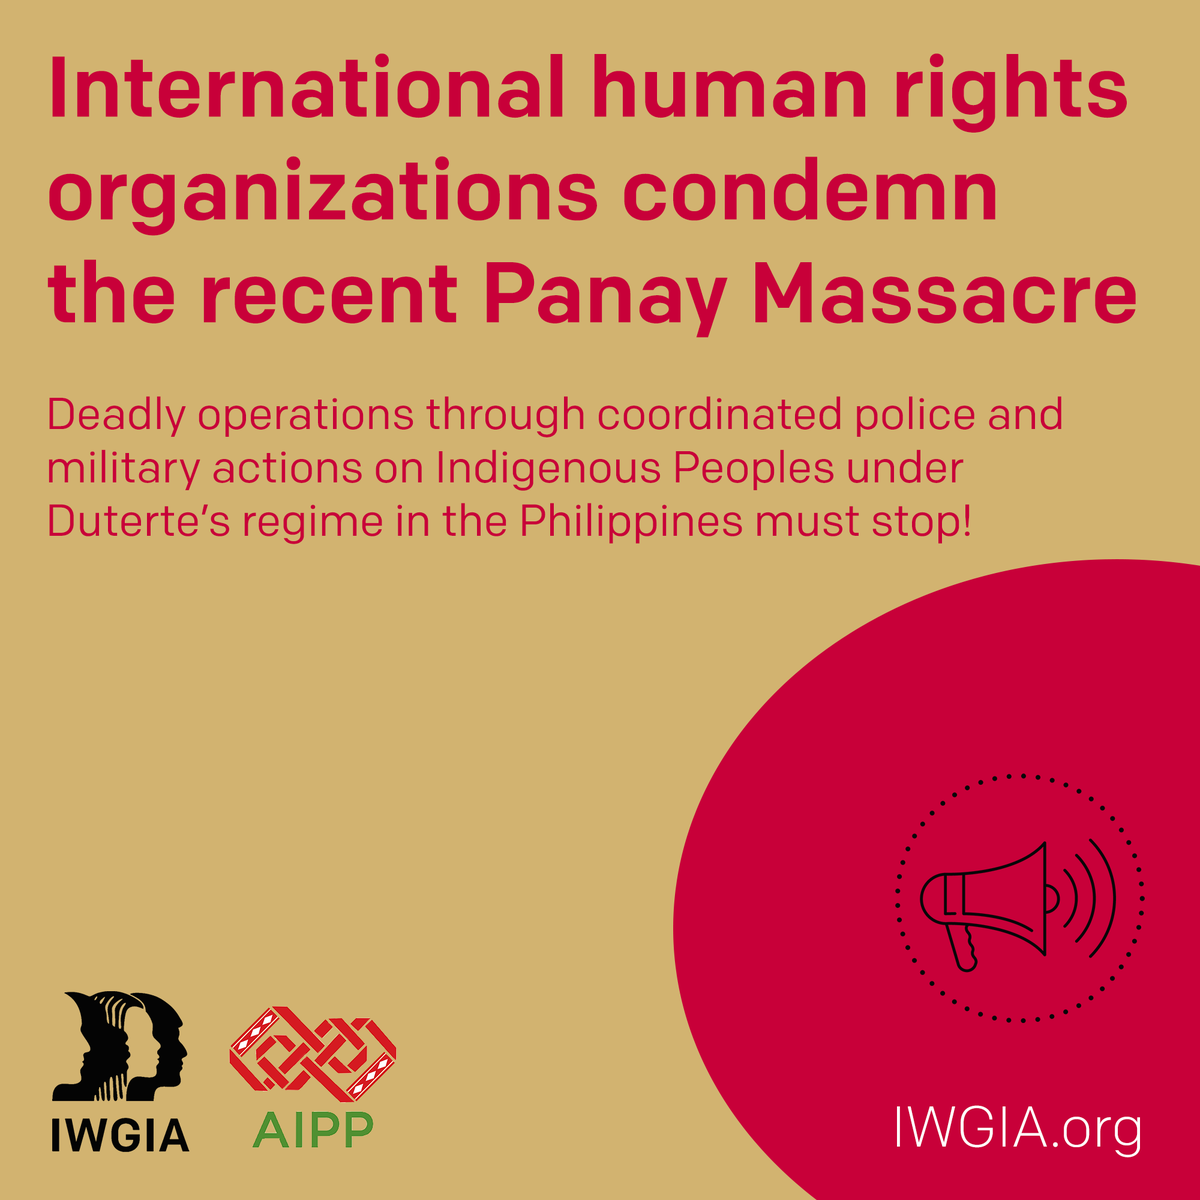 International human rights organizations condemn the recent #PanayMassacre.📢 Deadly operations through coordinated police and military actions on Indigenous Peoples under Duterte's regime in the #Philippines must stop!🇵🇭 👉Statement: iwgia.org/en/philippines… #StopTheKillingsPH